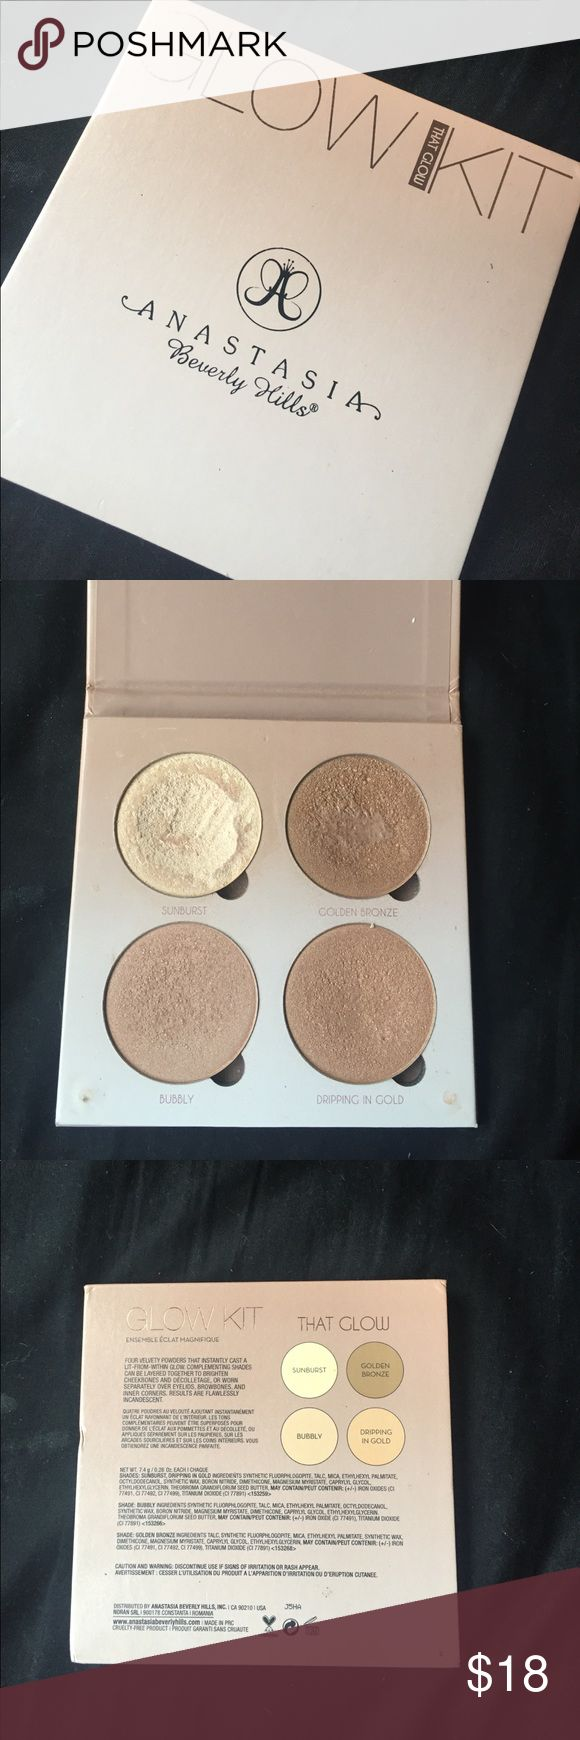 Anastasia Beverly Hills That Glow Highlighter ABH That Glow Highlighter, it's been loved but still has a lot of life left! Open to offers Anastasia Beverly Hills Makeup Luminizer